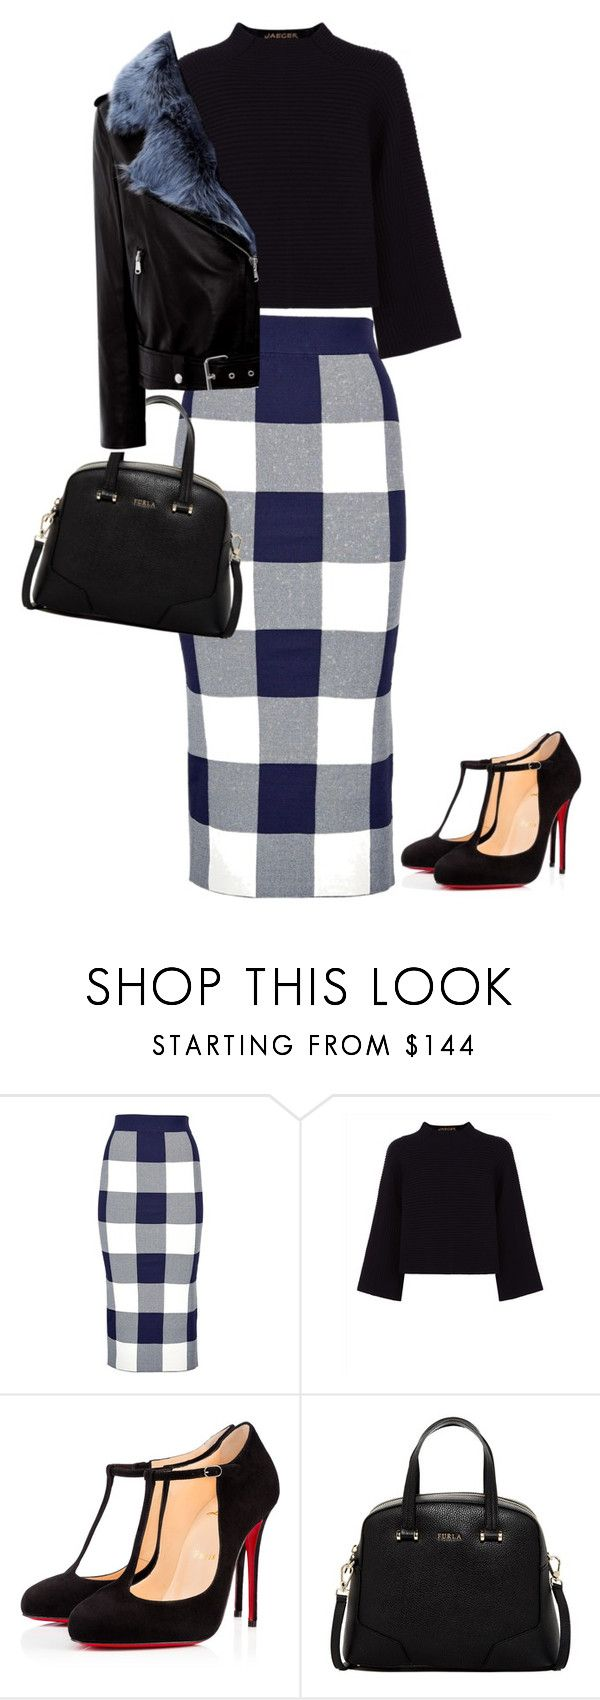 """""""Untitled #578"""" by waila-3 ❤ liked on Polyvore featuring Whistles, Jaeger, Christian Louboutin, Furla and La Bête"""